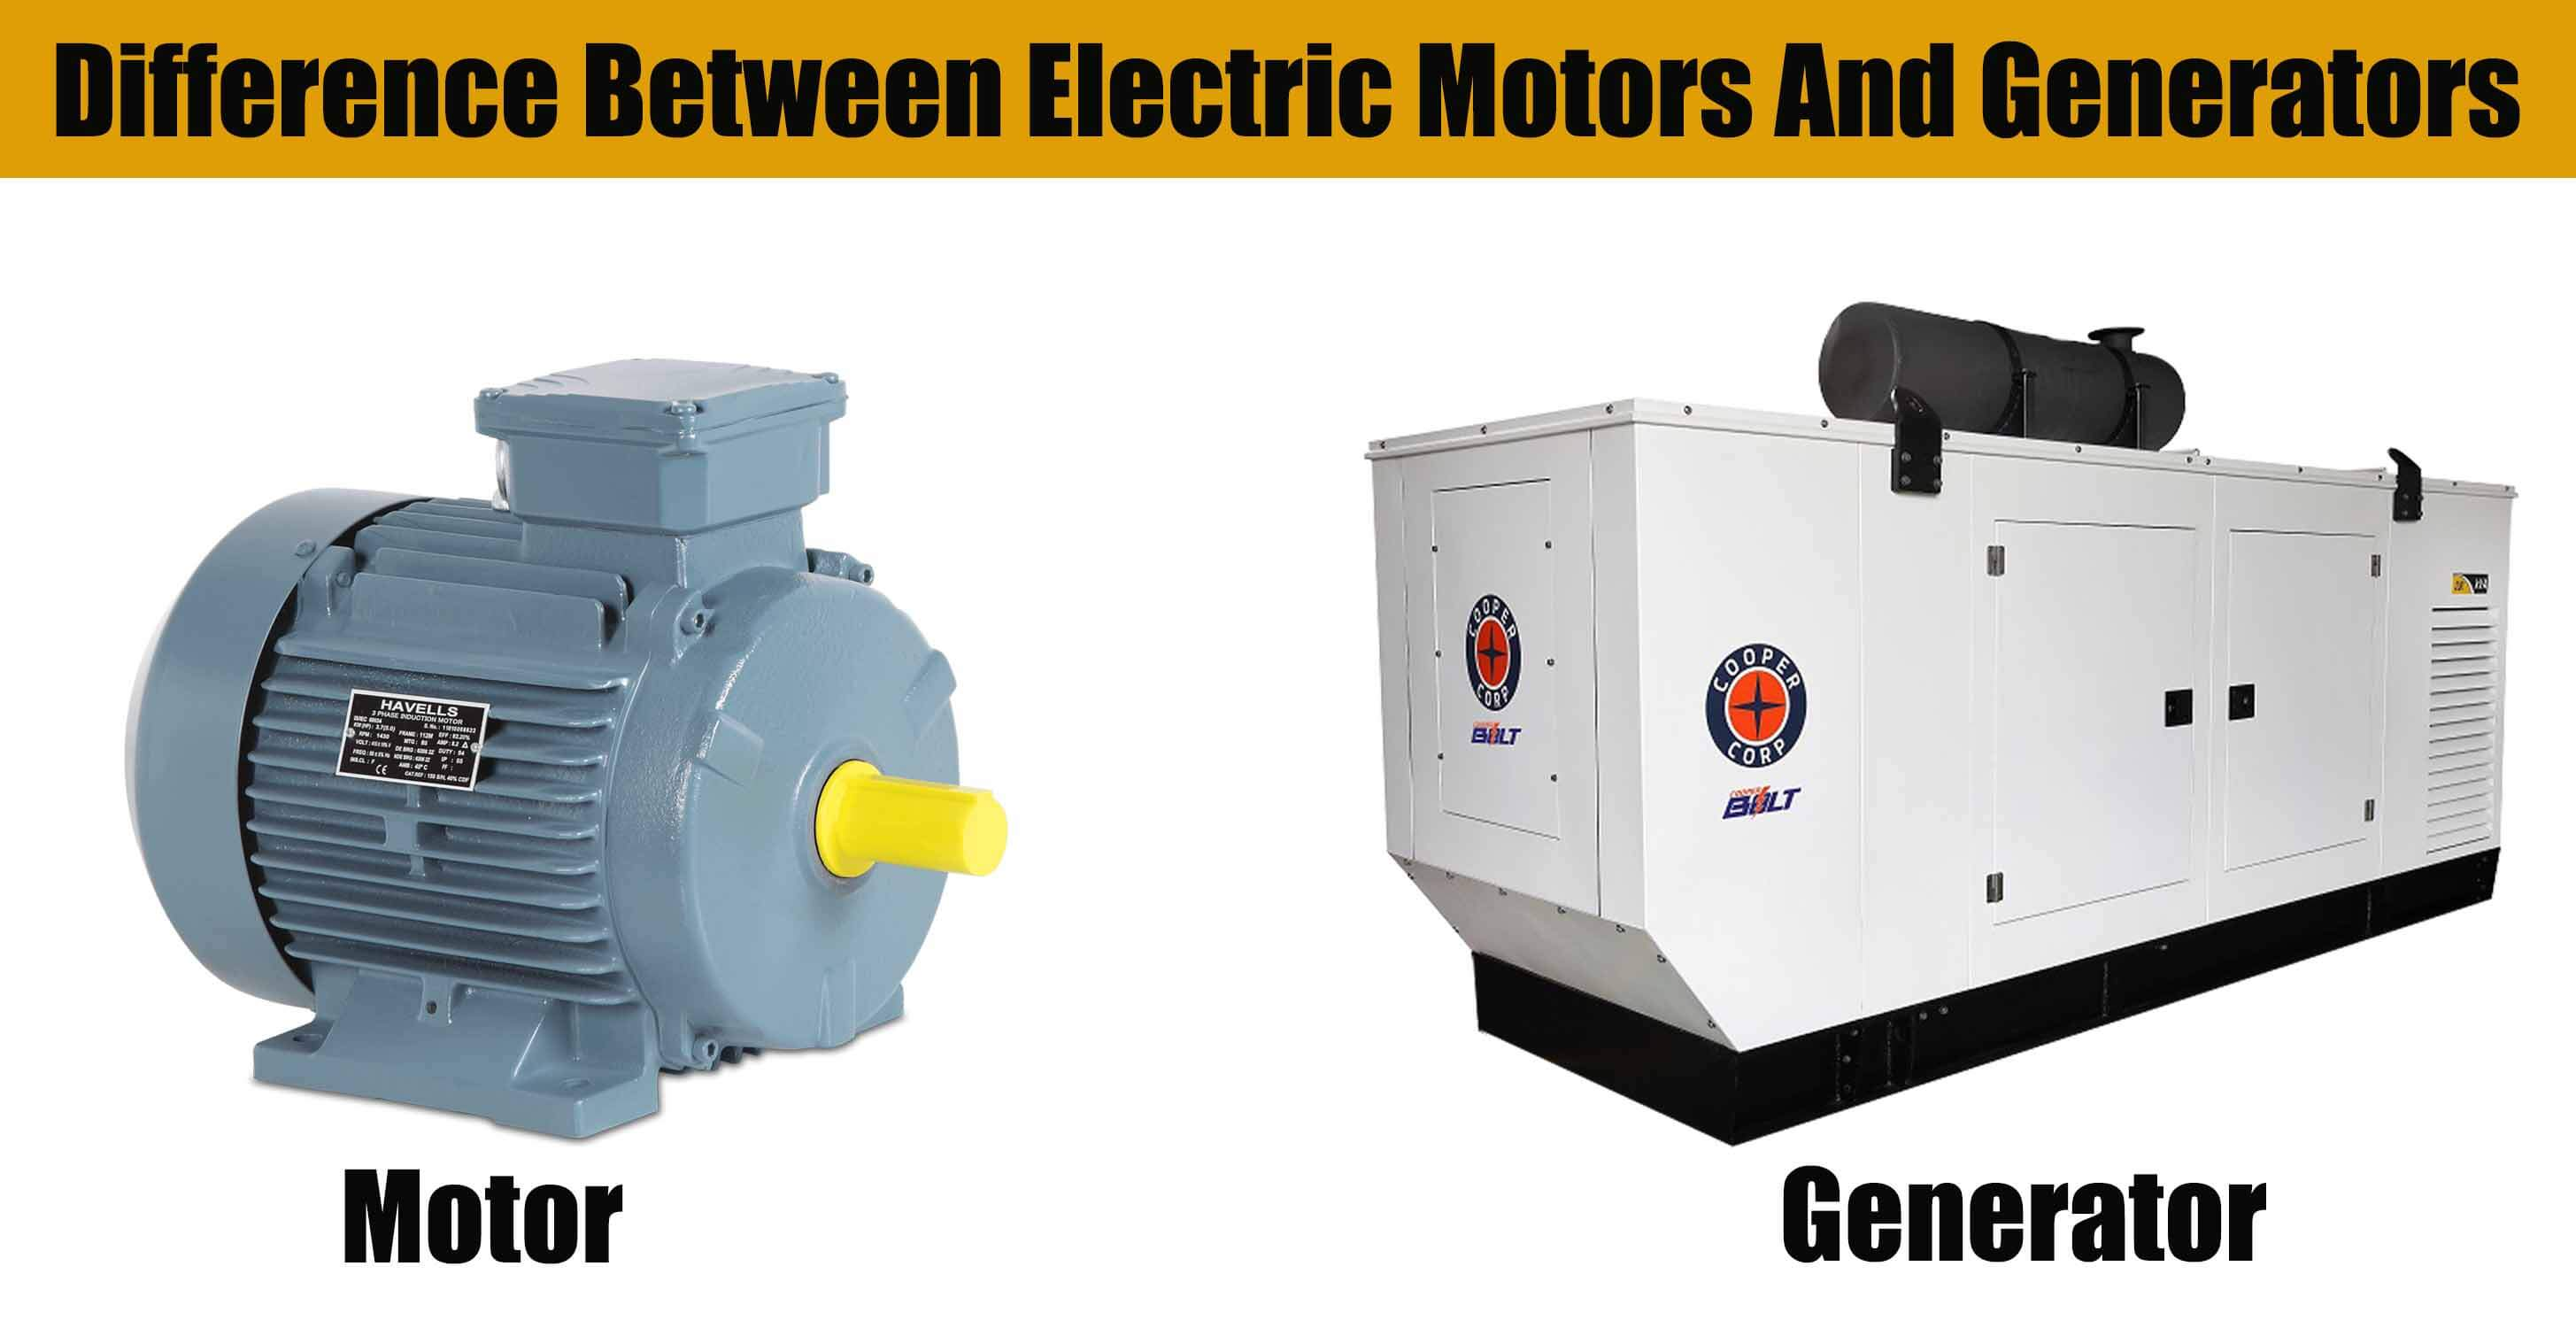 Difference Between Electric Motors And Generators